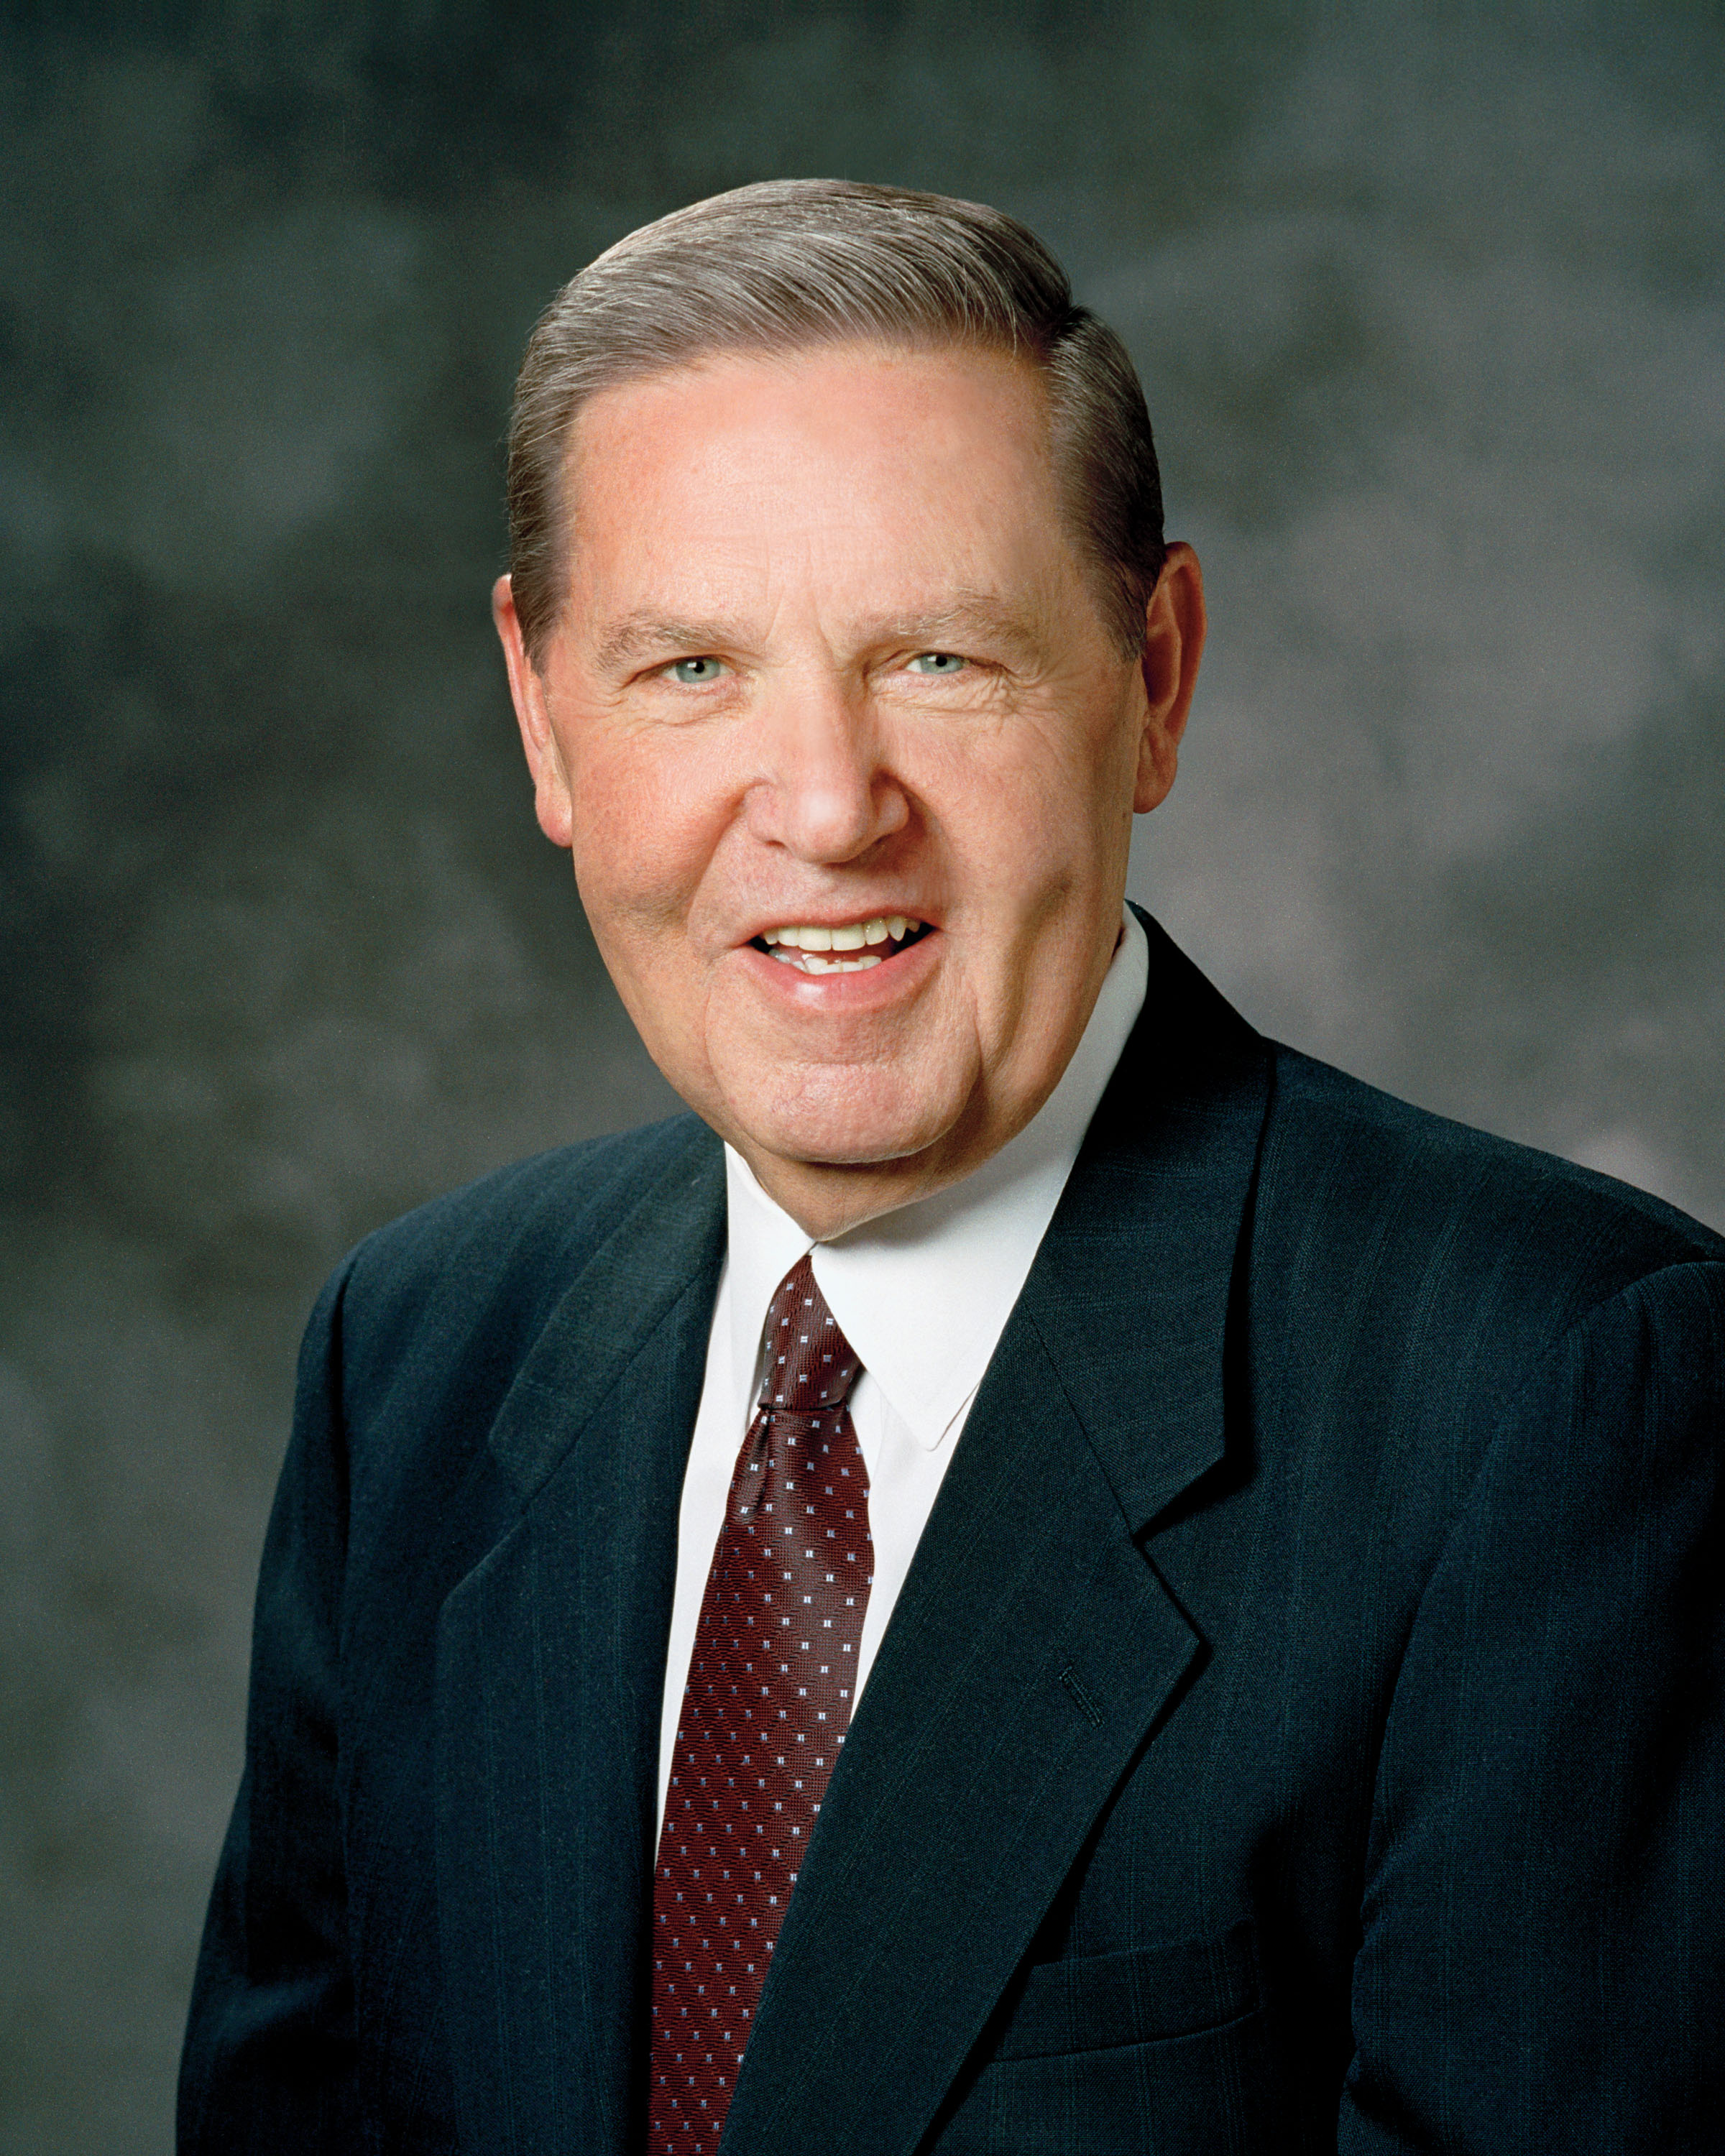 Elder Jeffrey R. Holland